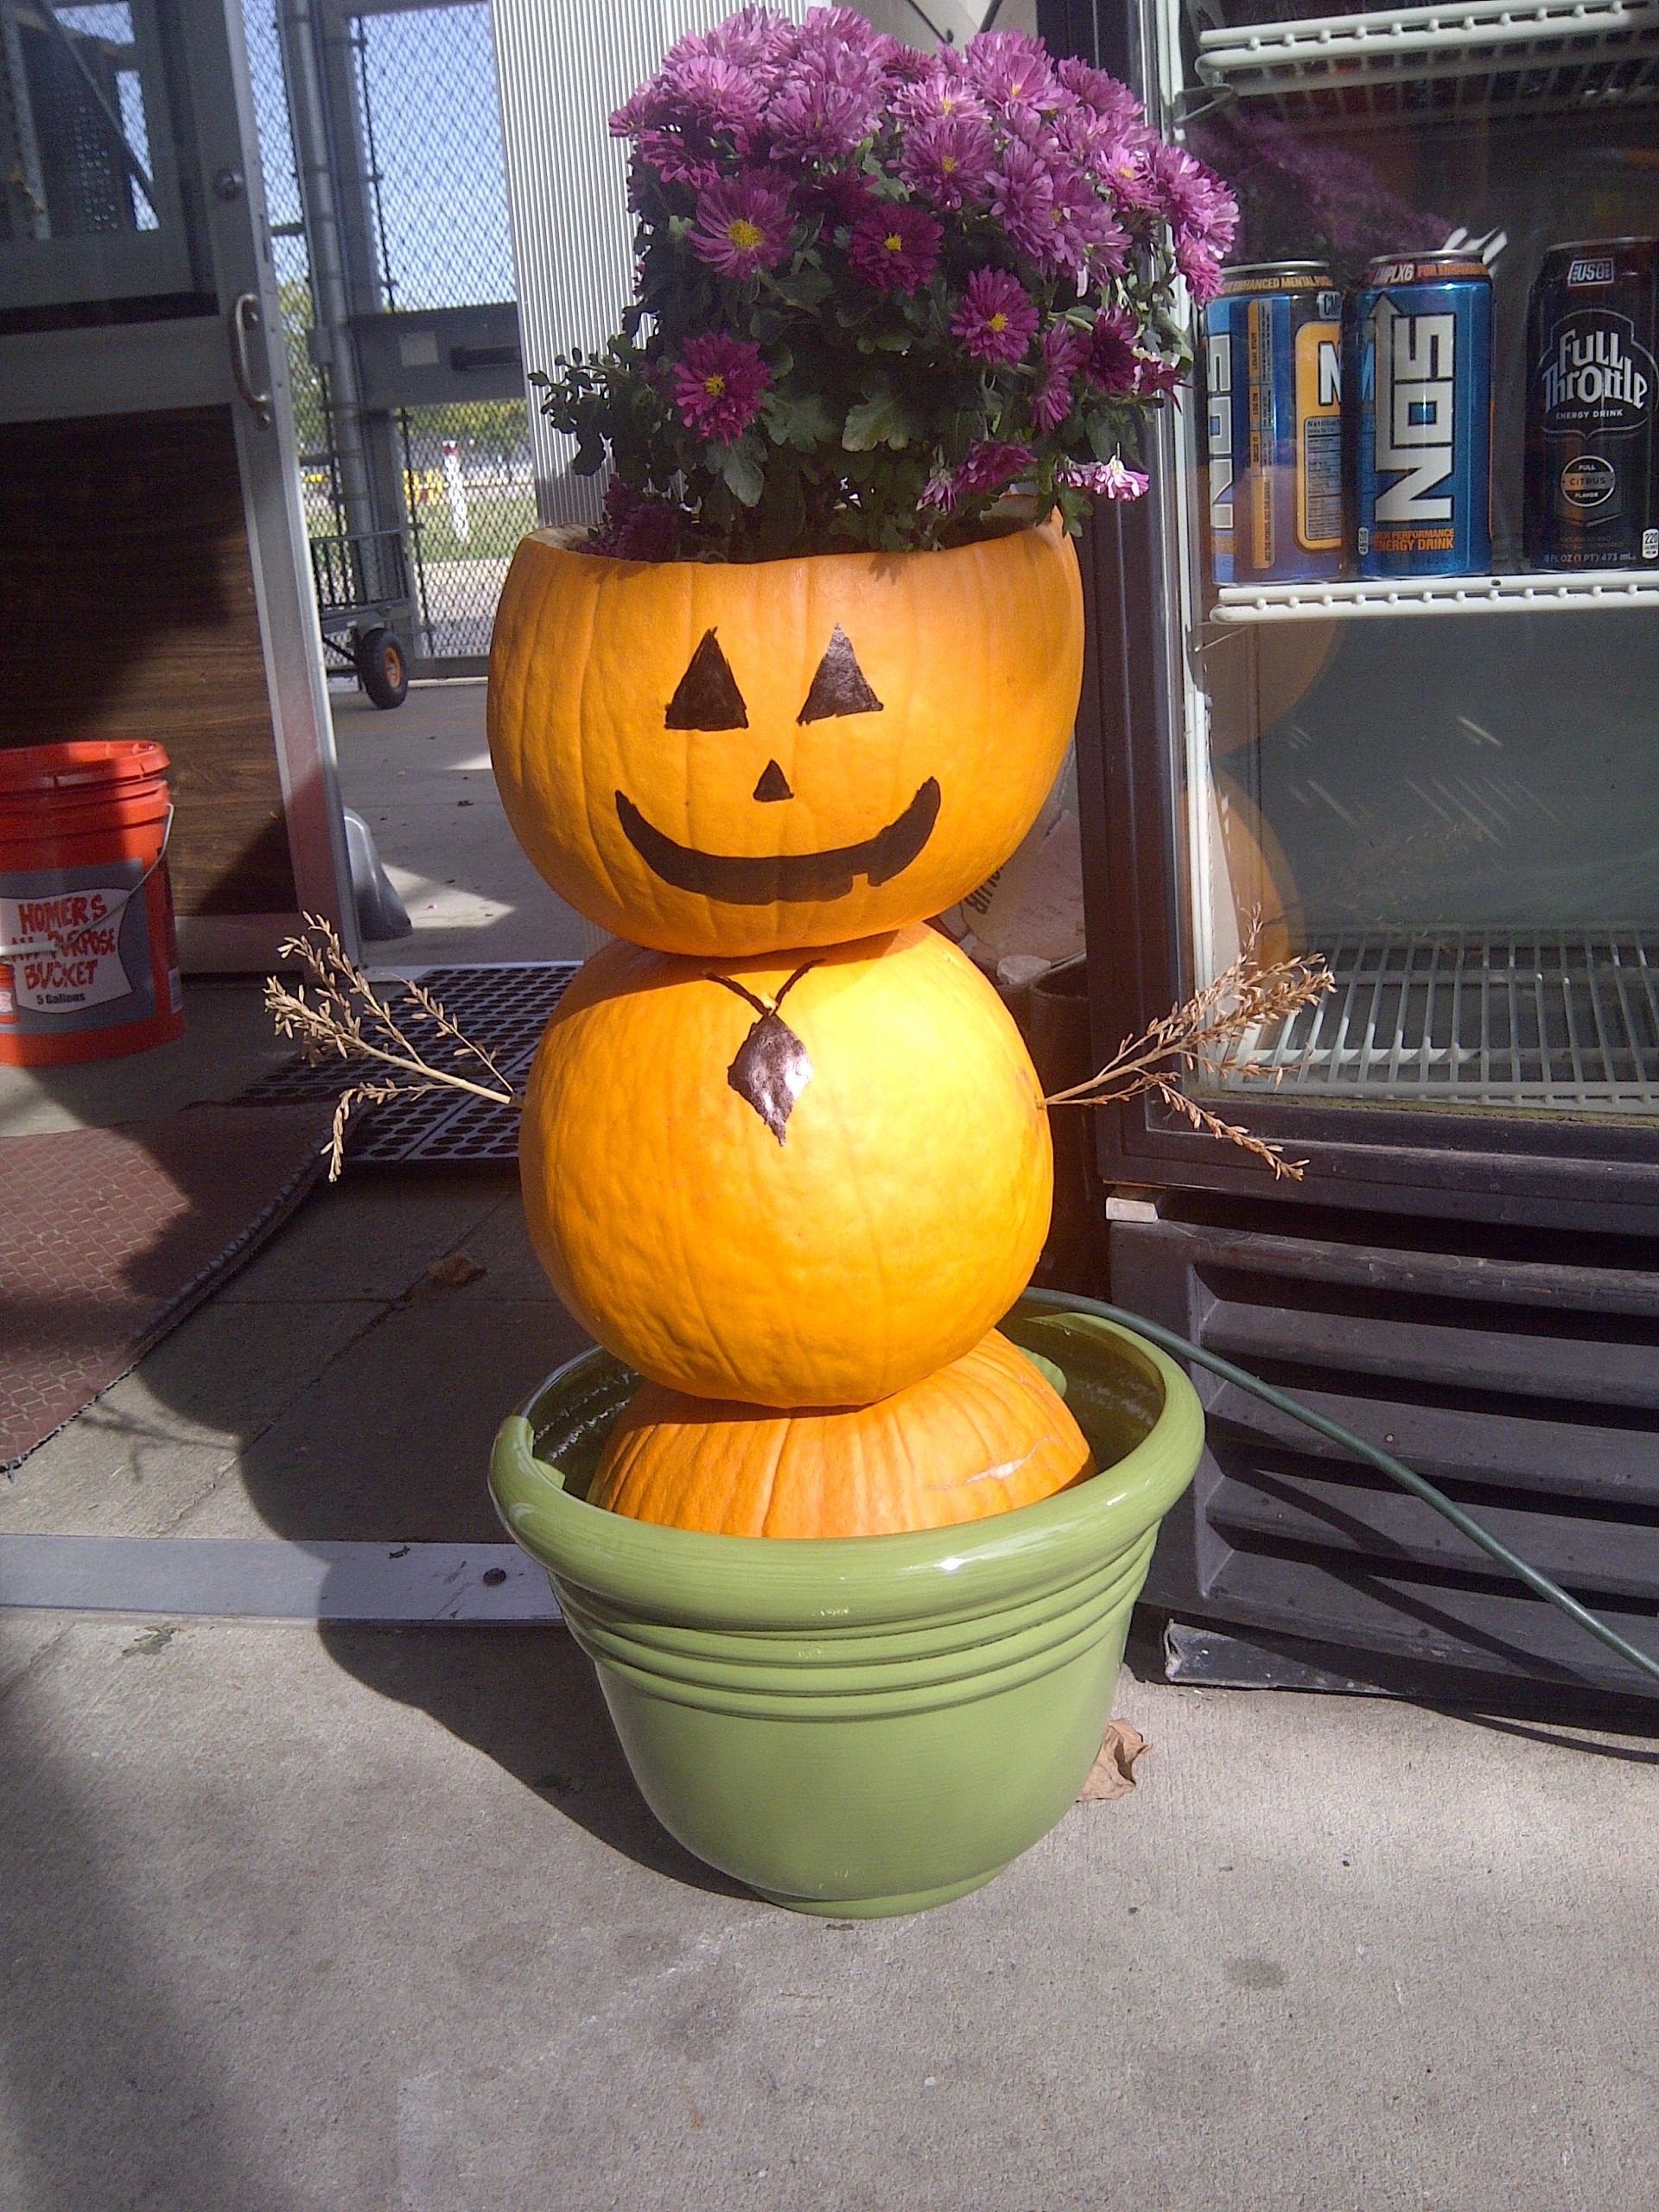 A Mumkin made by some of my associates at the Home Depot